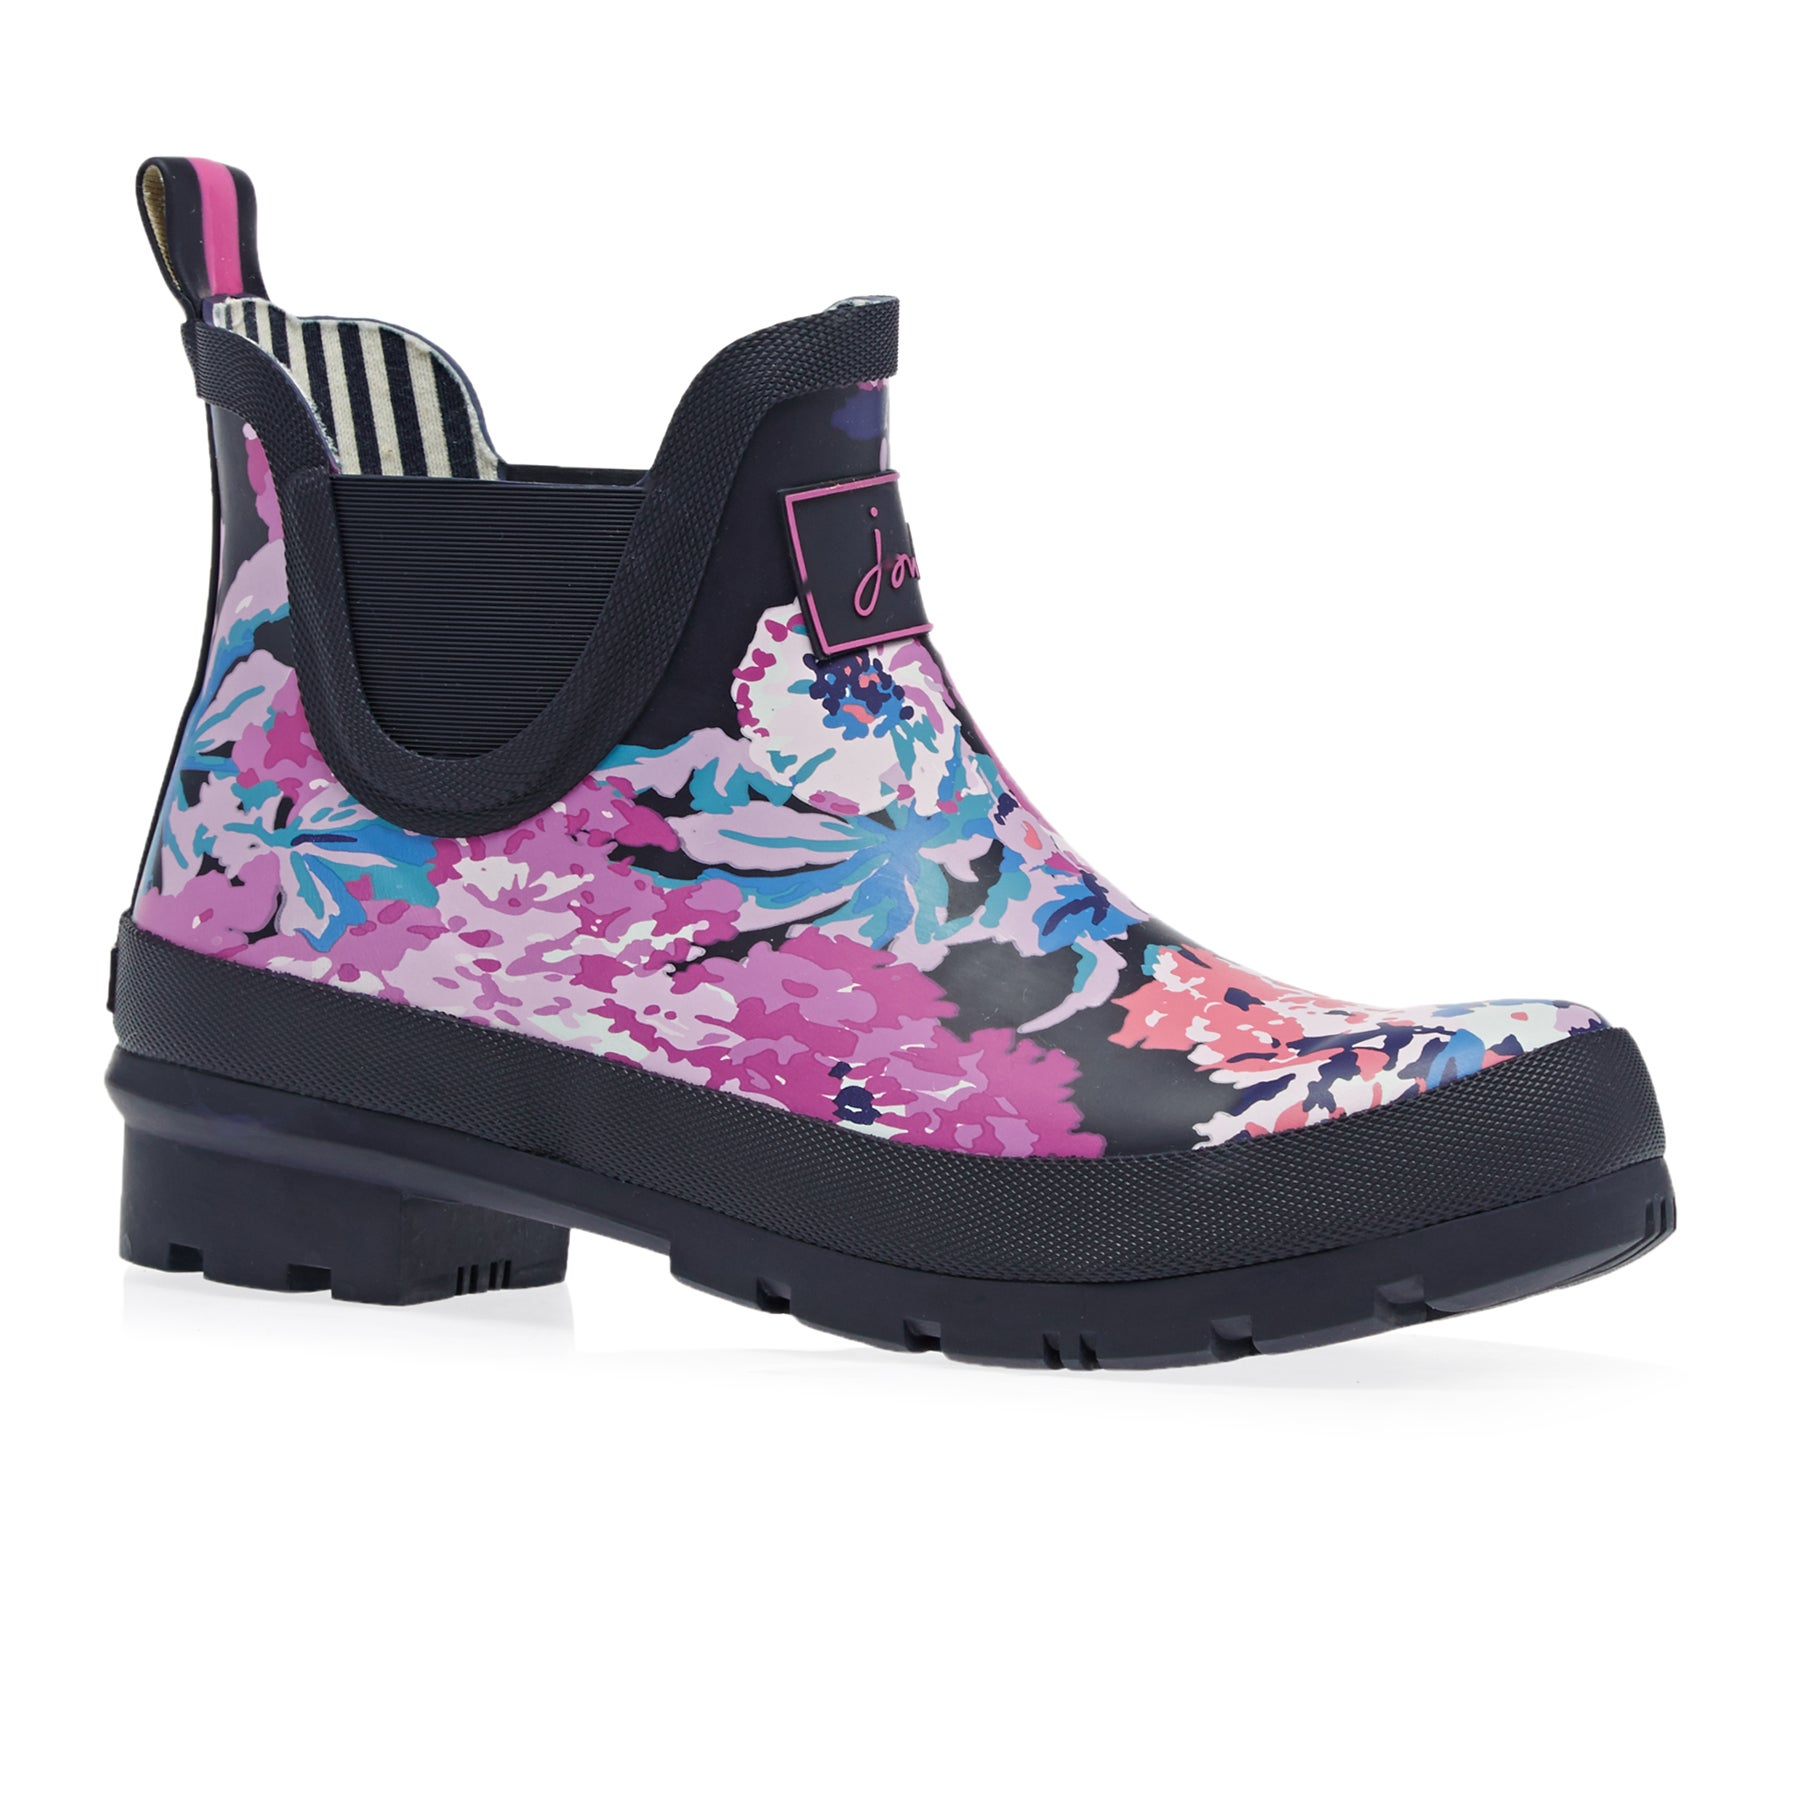 Joules Wellibob Womens Wellies - Navy All Over Floral